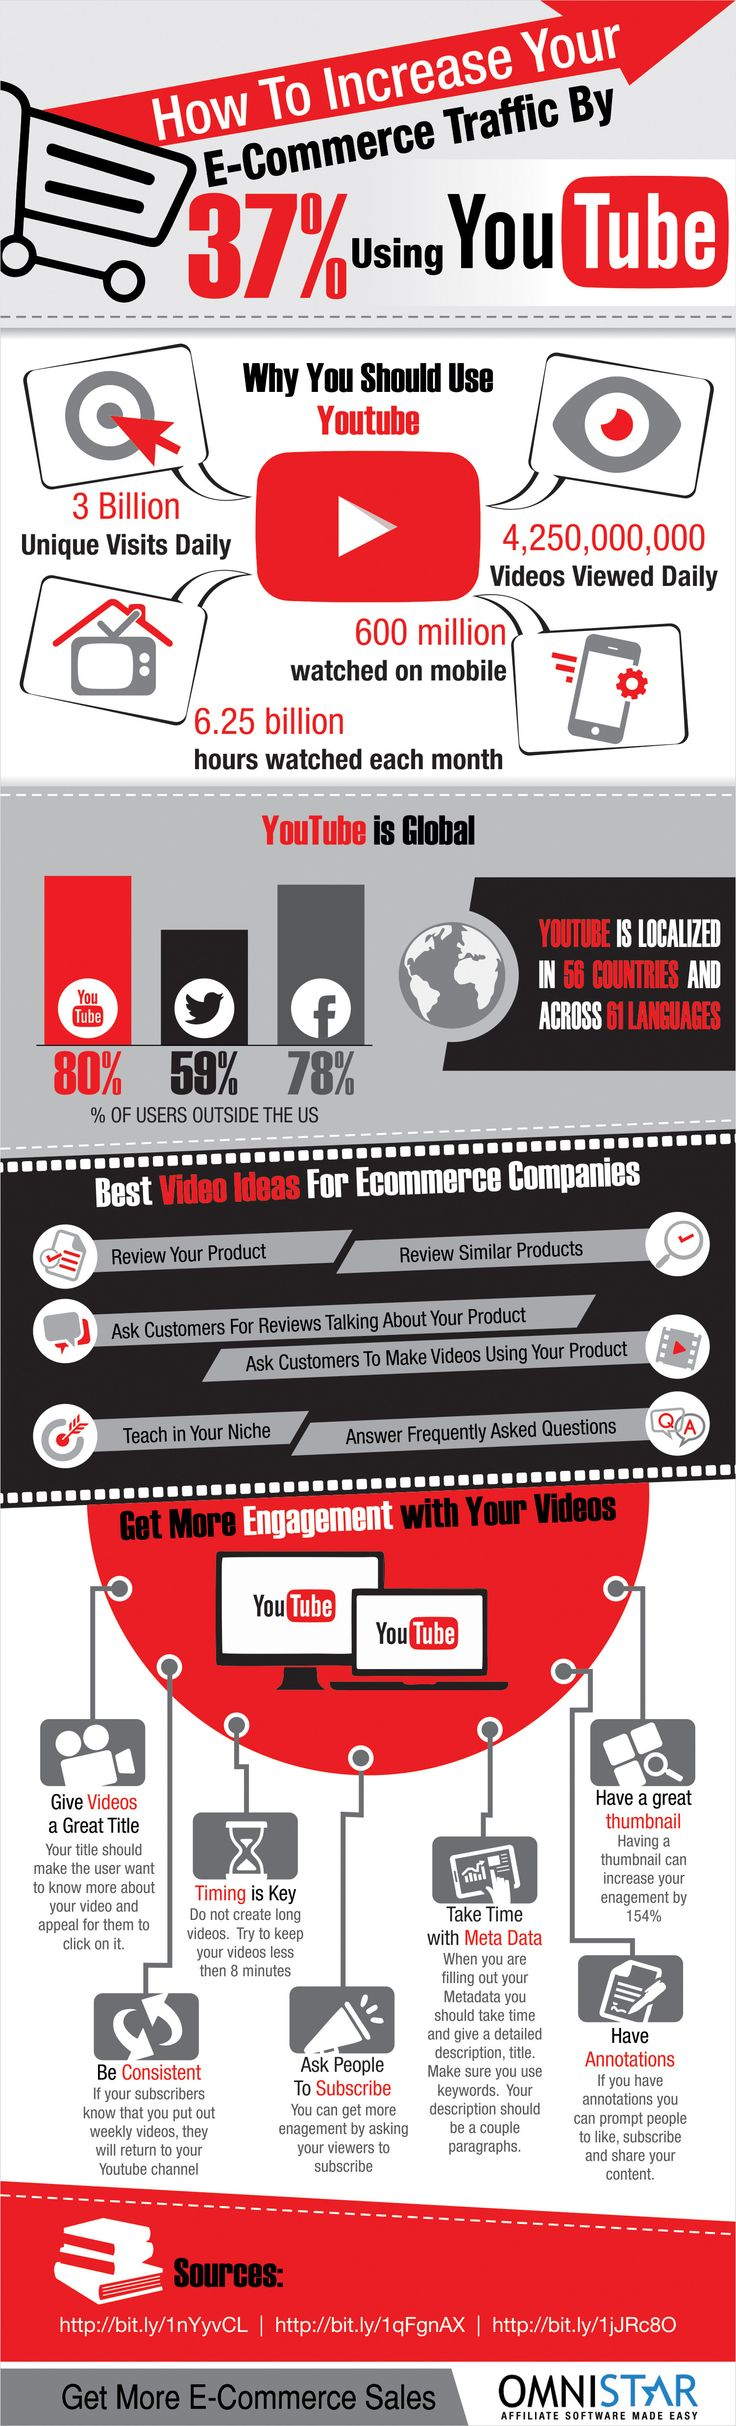 How To Increase Your E-Commerce Traffic By 37% Using YouTube